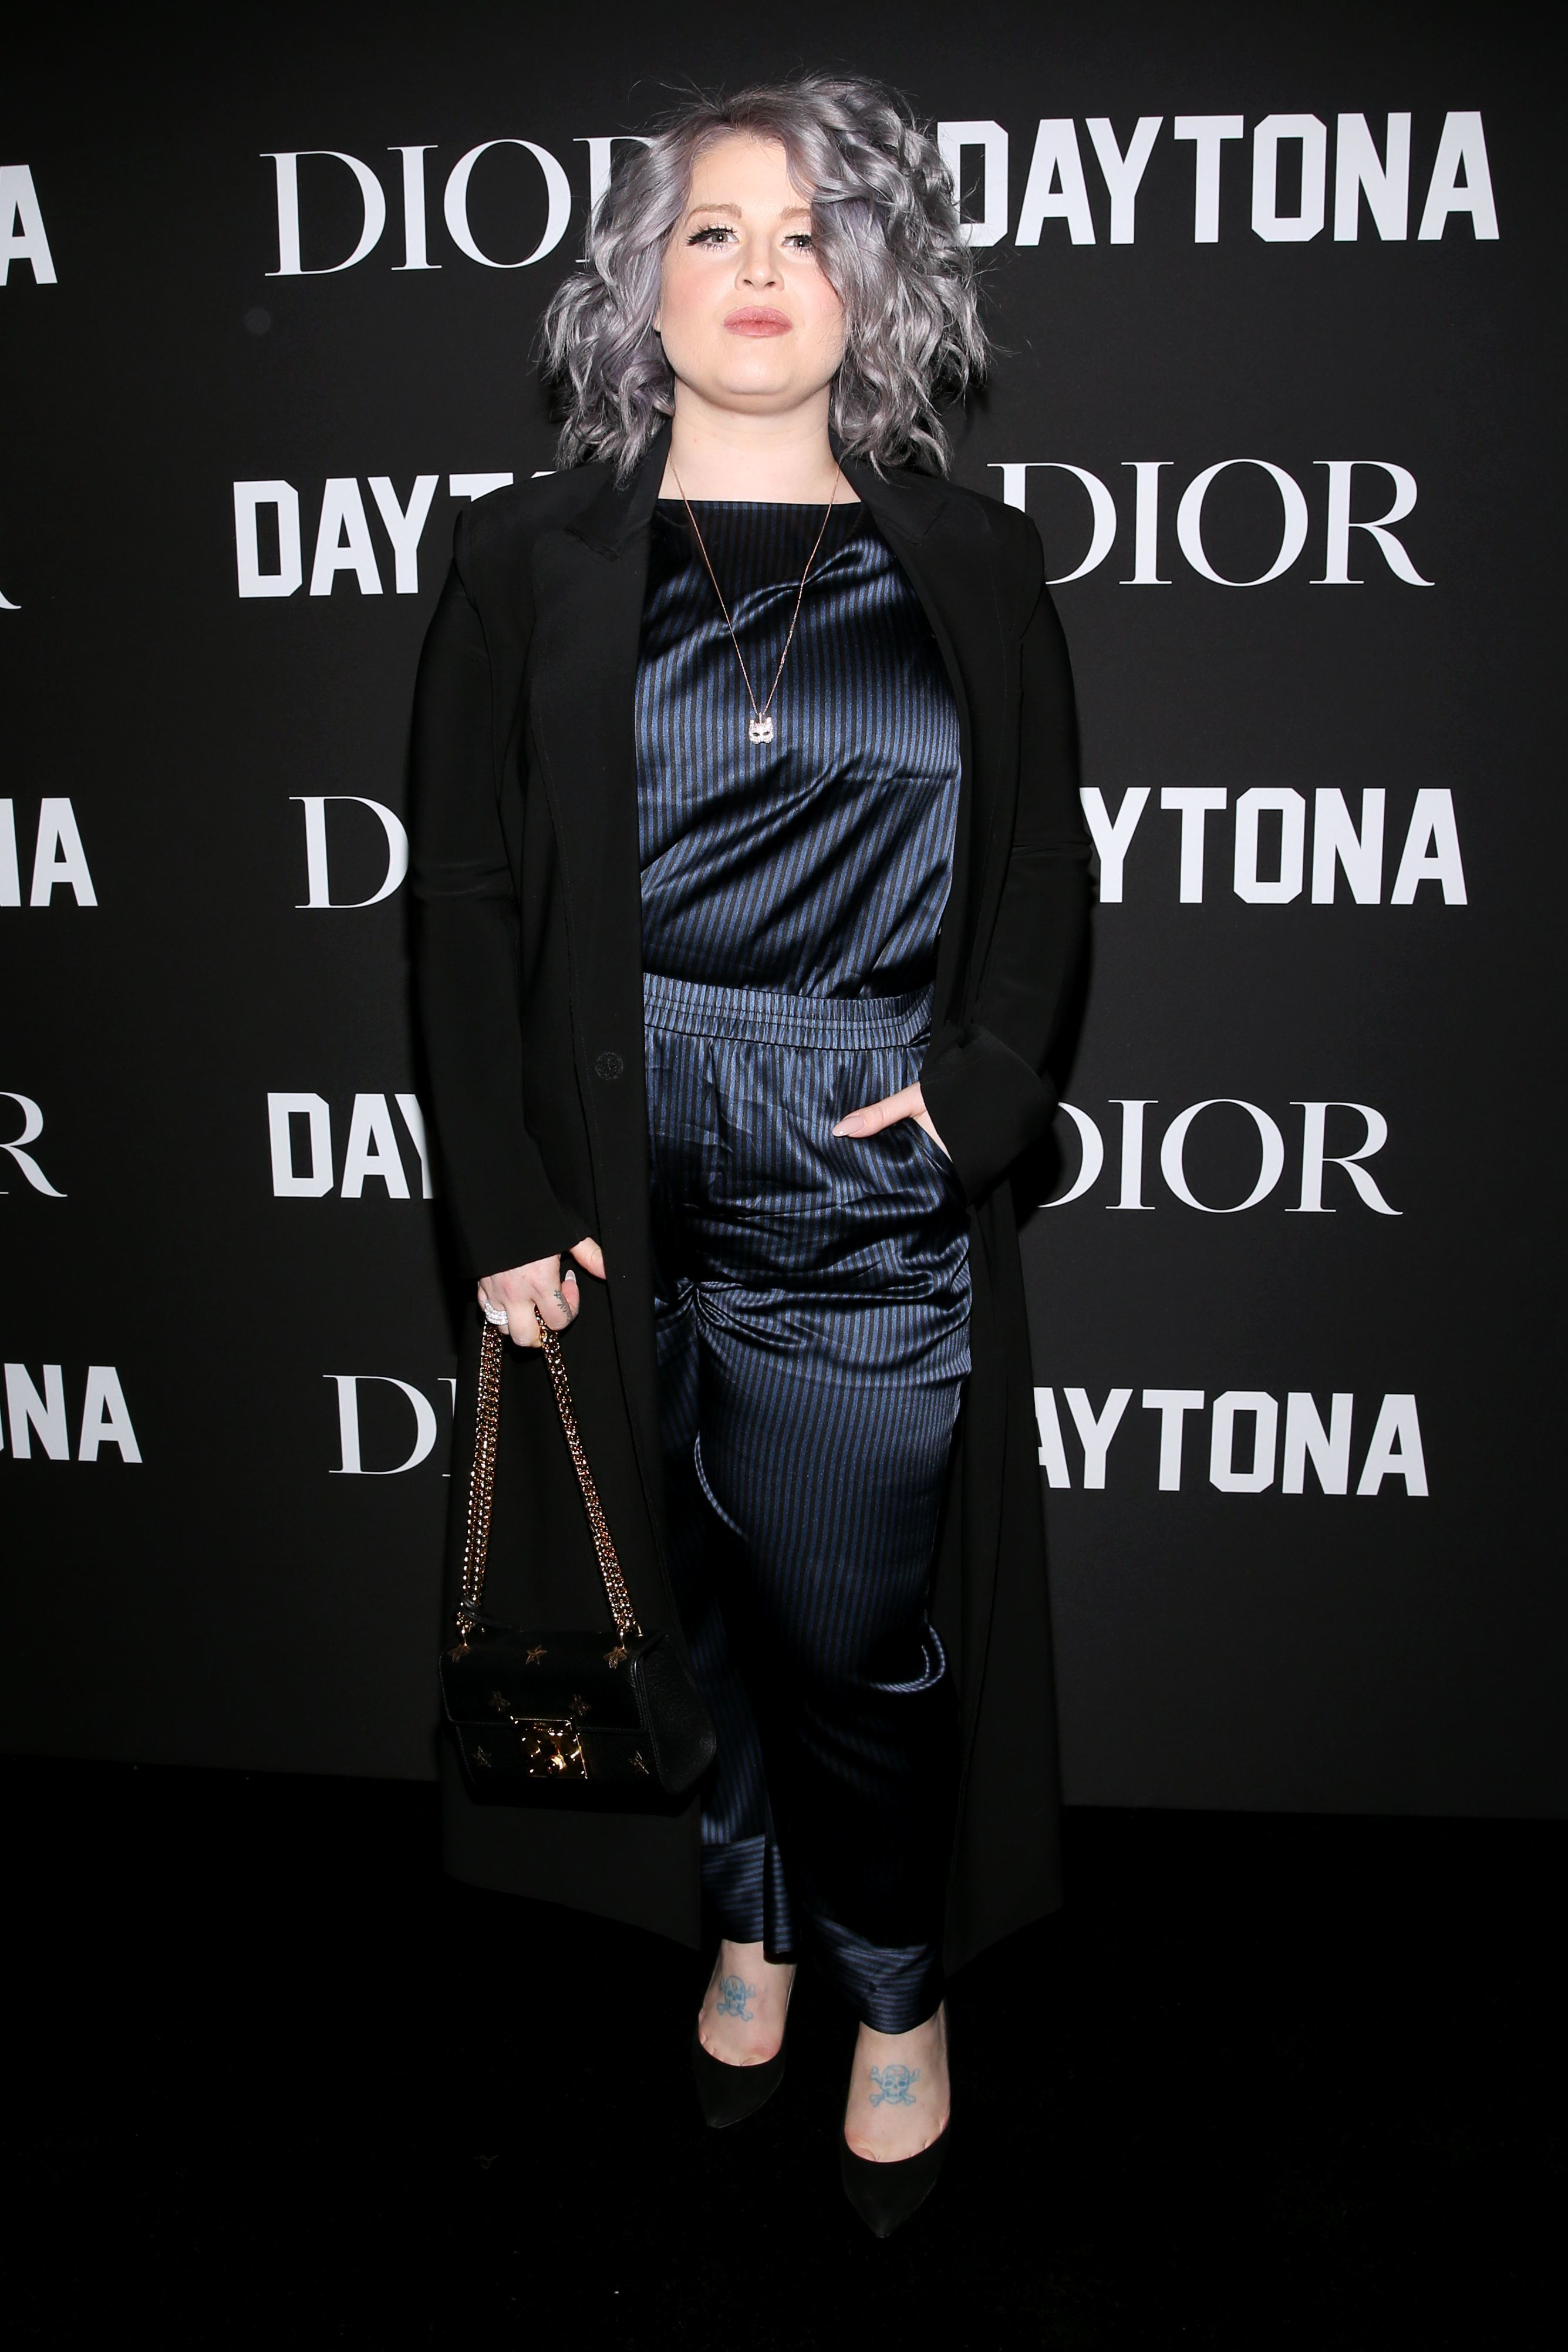 Kelly Osbourne attends the Dior x Grammys Party in Los Angeles on Feb. 8, 2019.